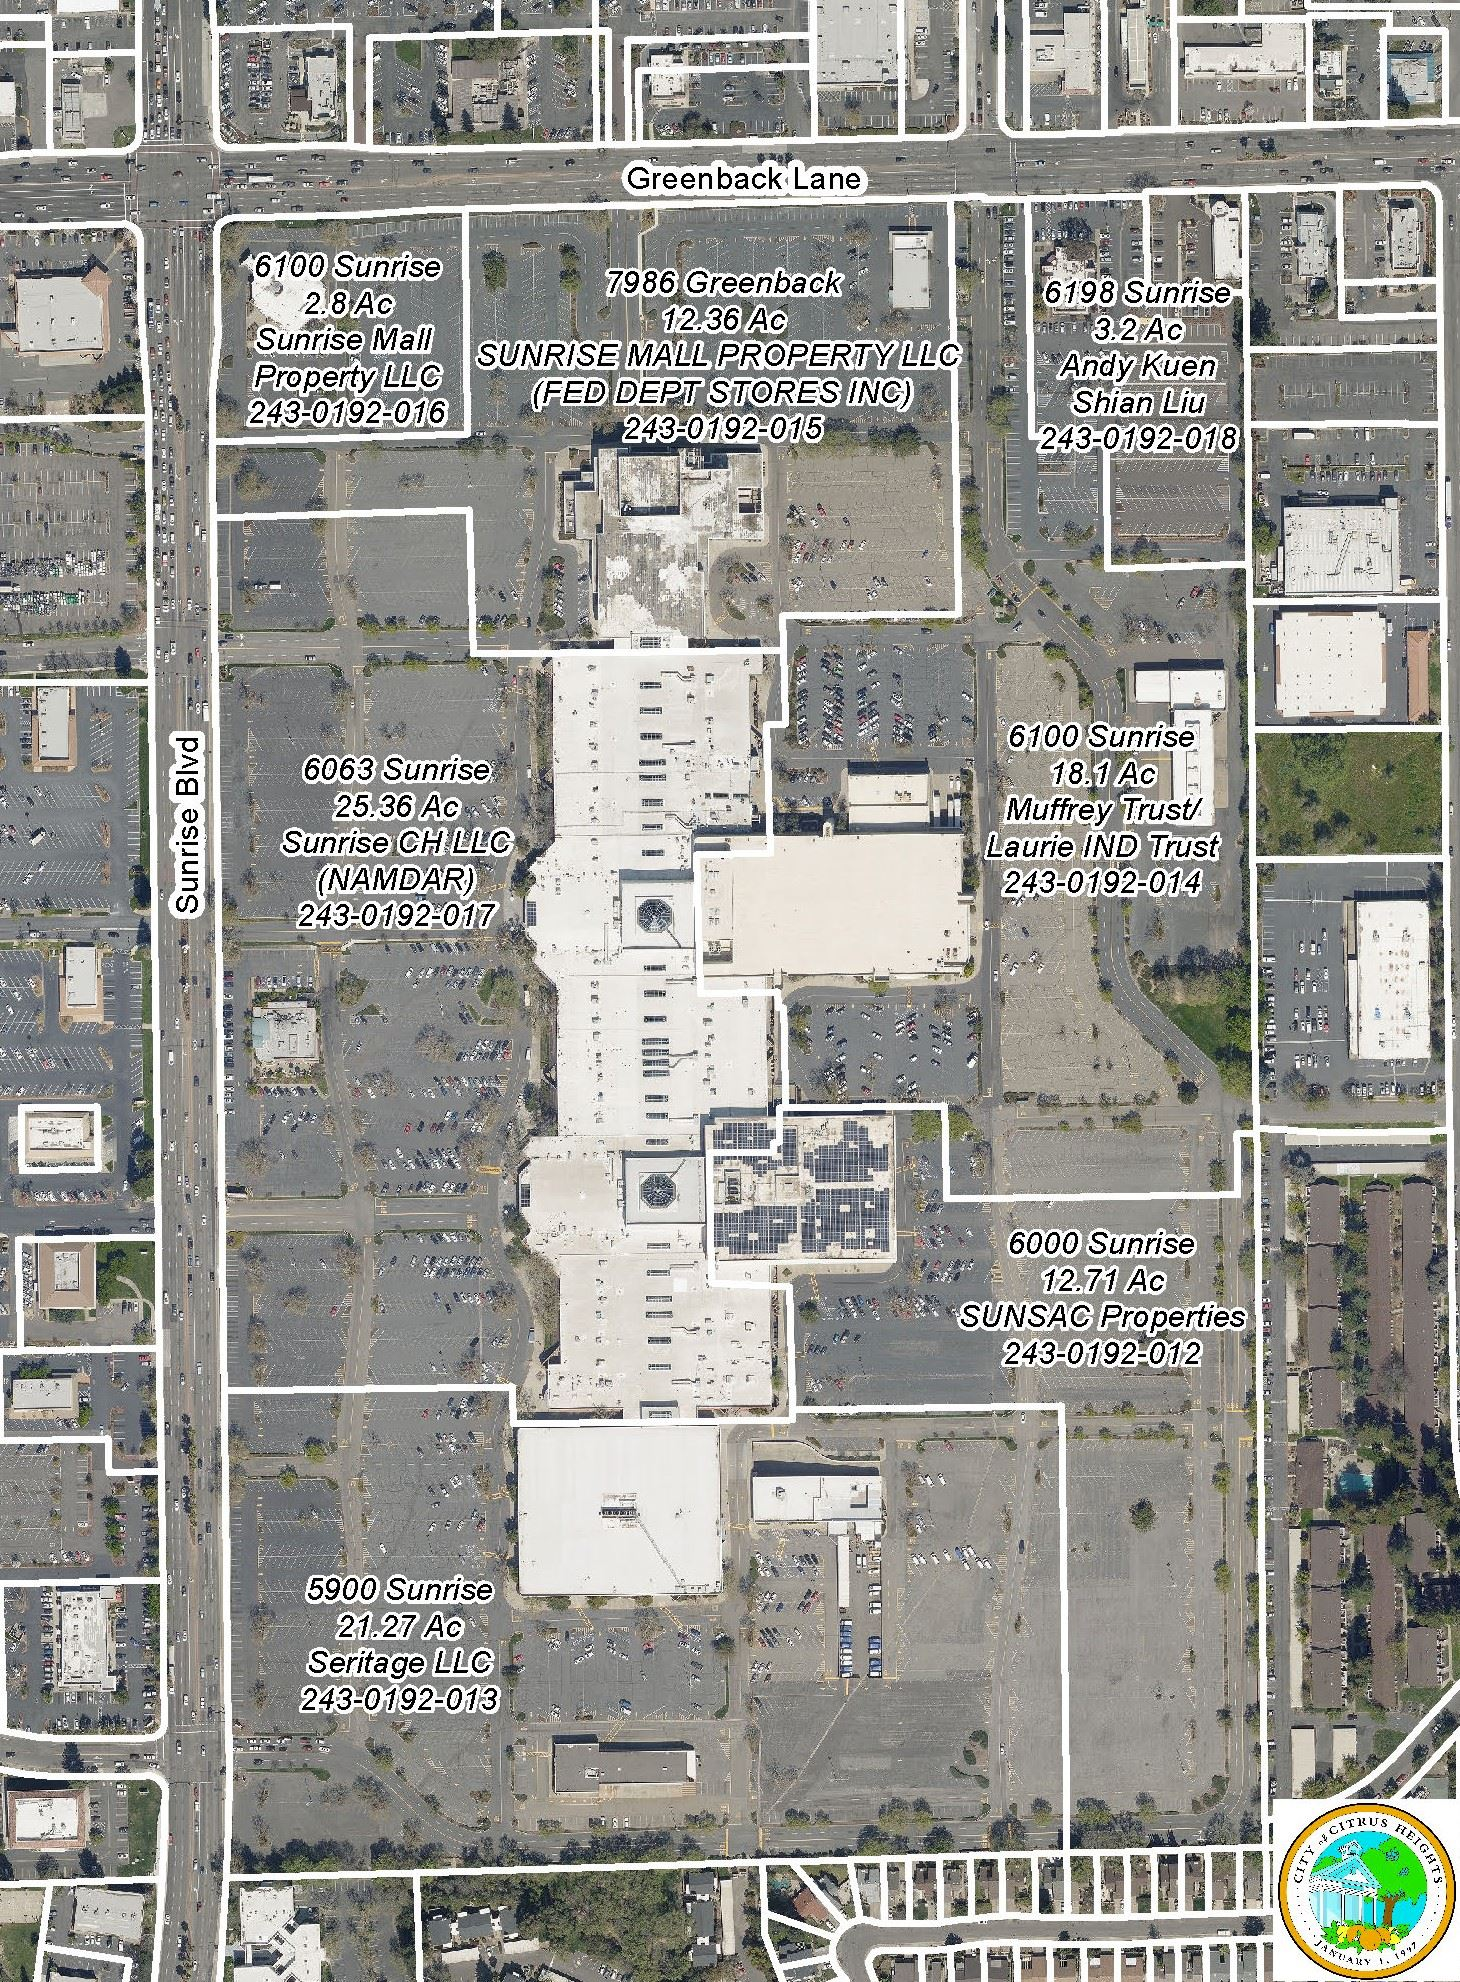 Sunrise Mall Site Map